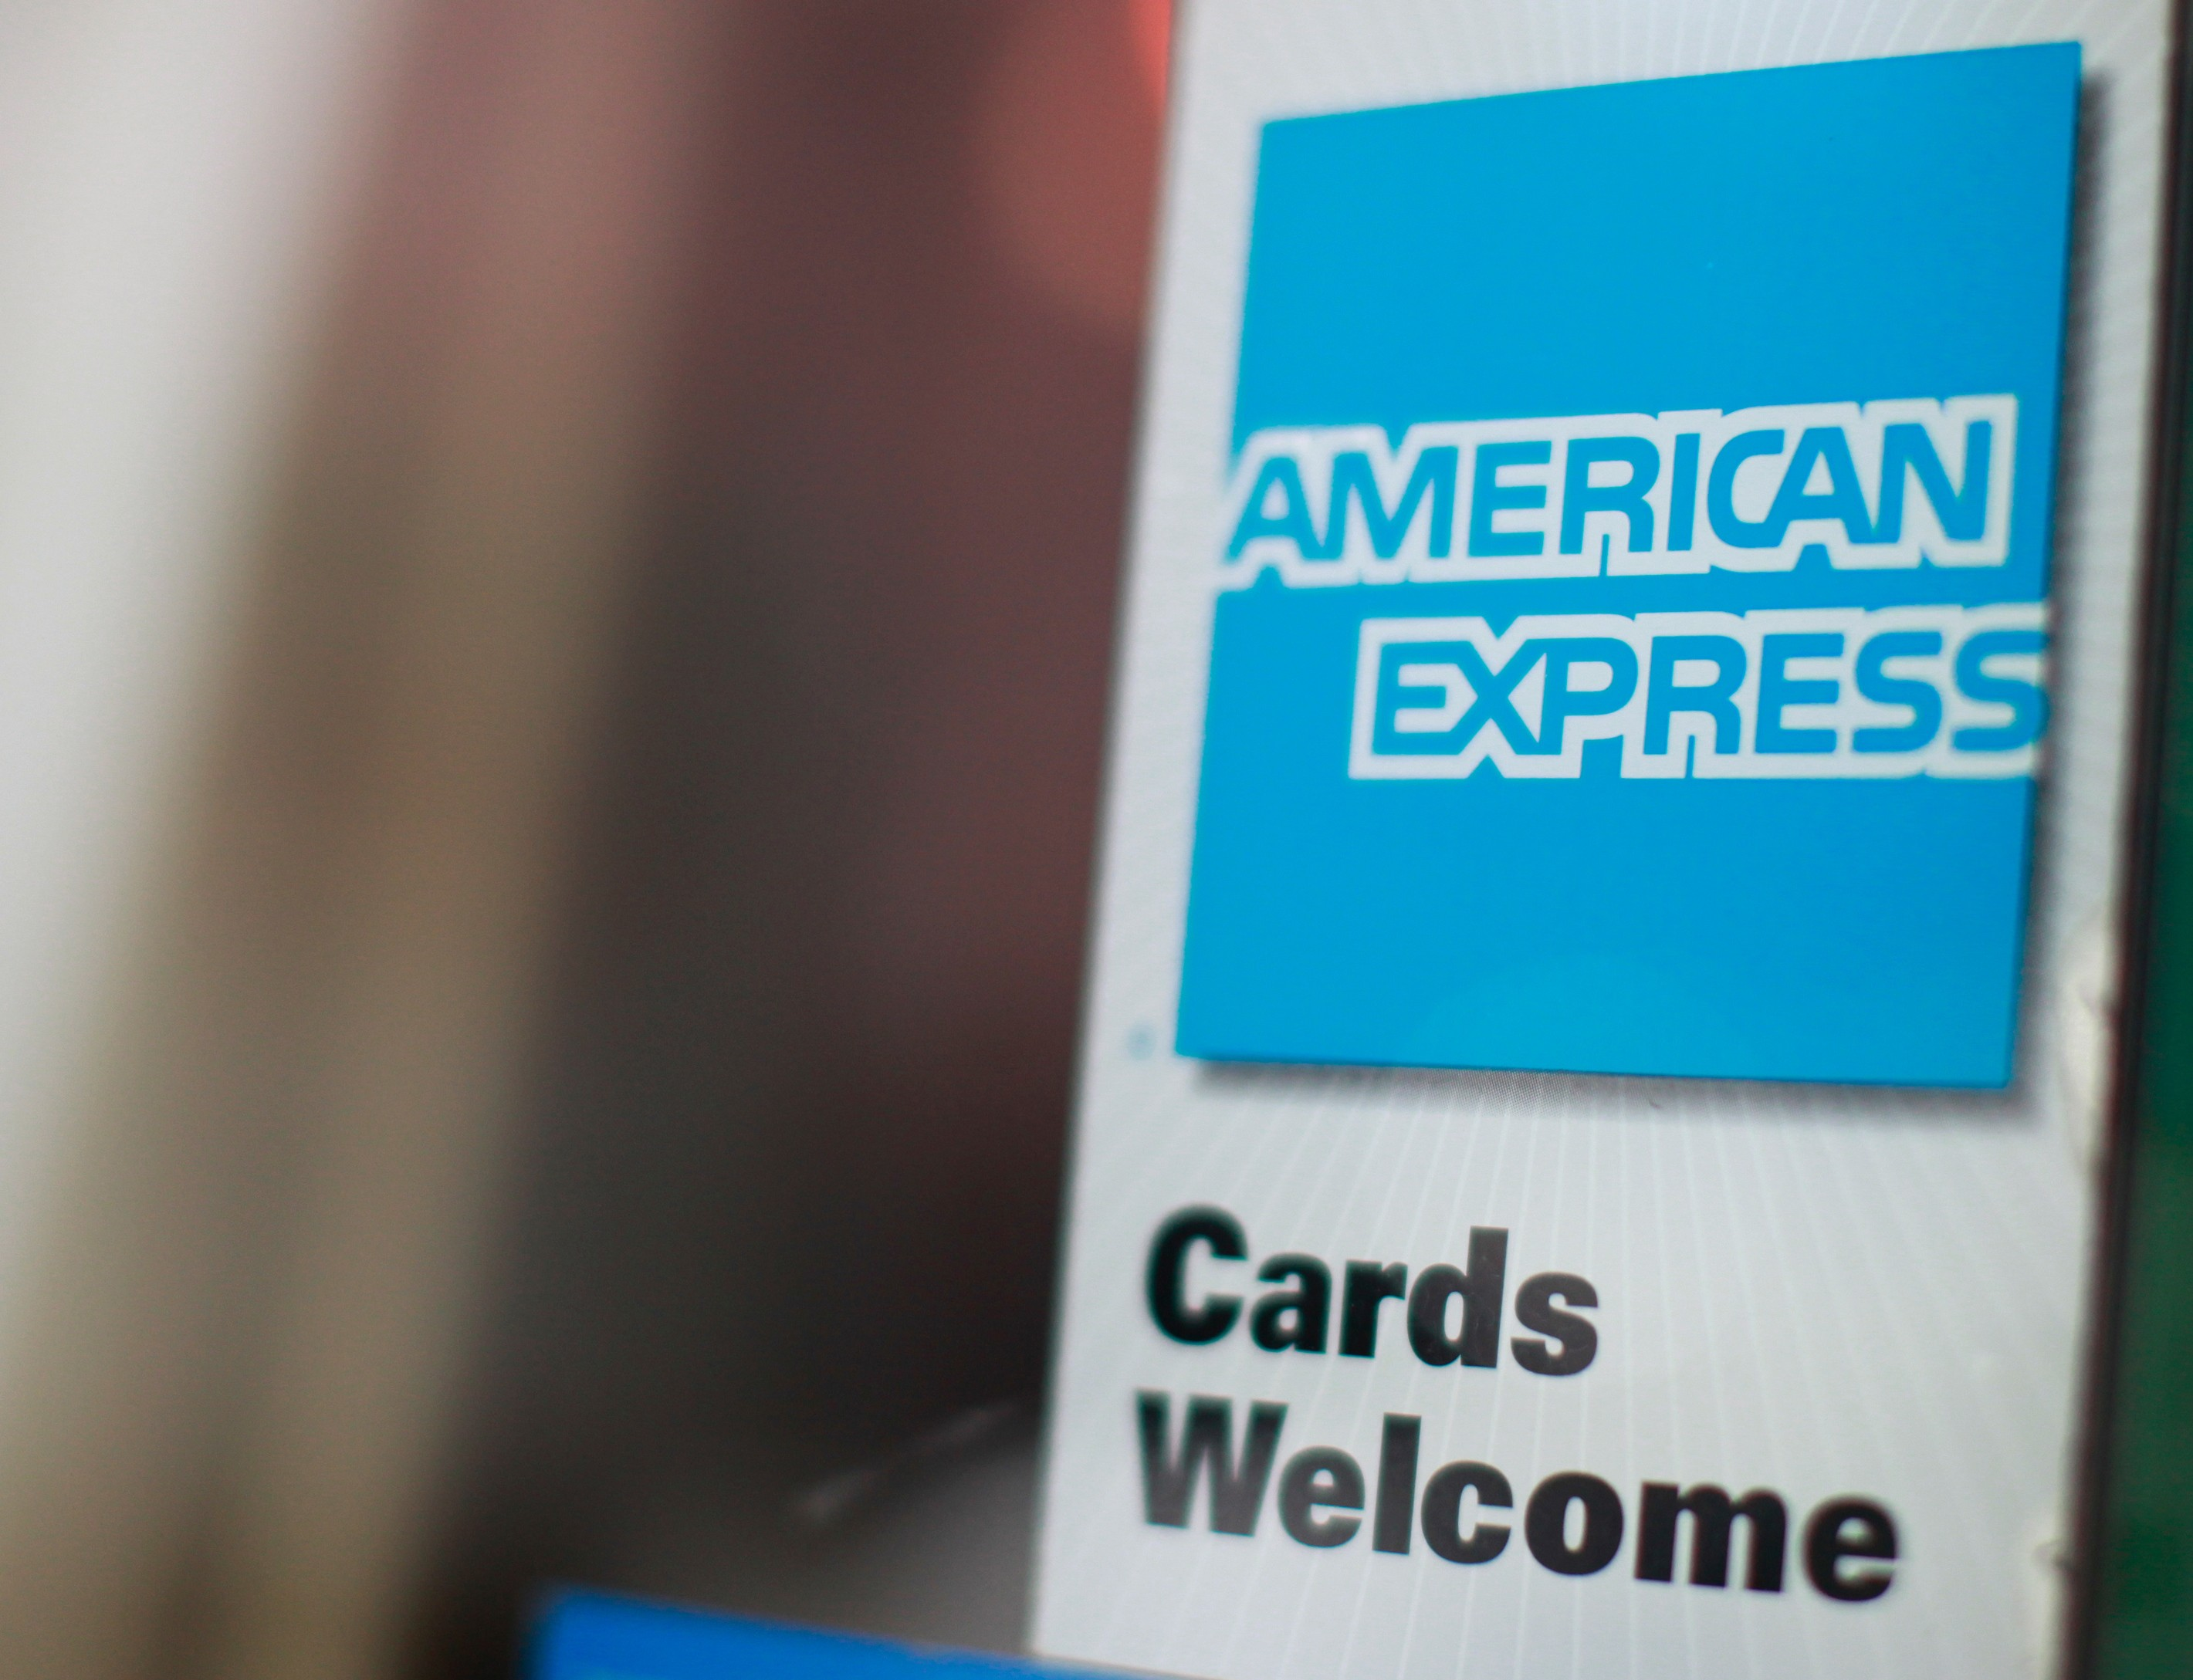 Wiring Money With American Express